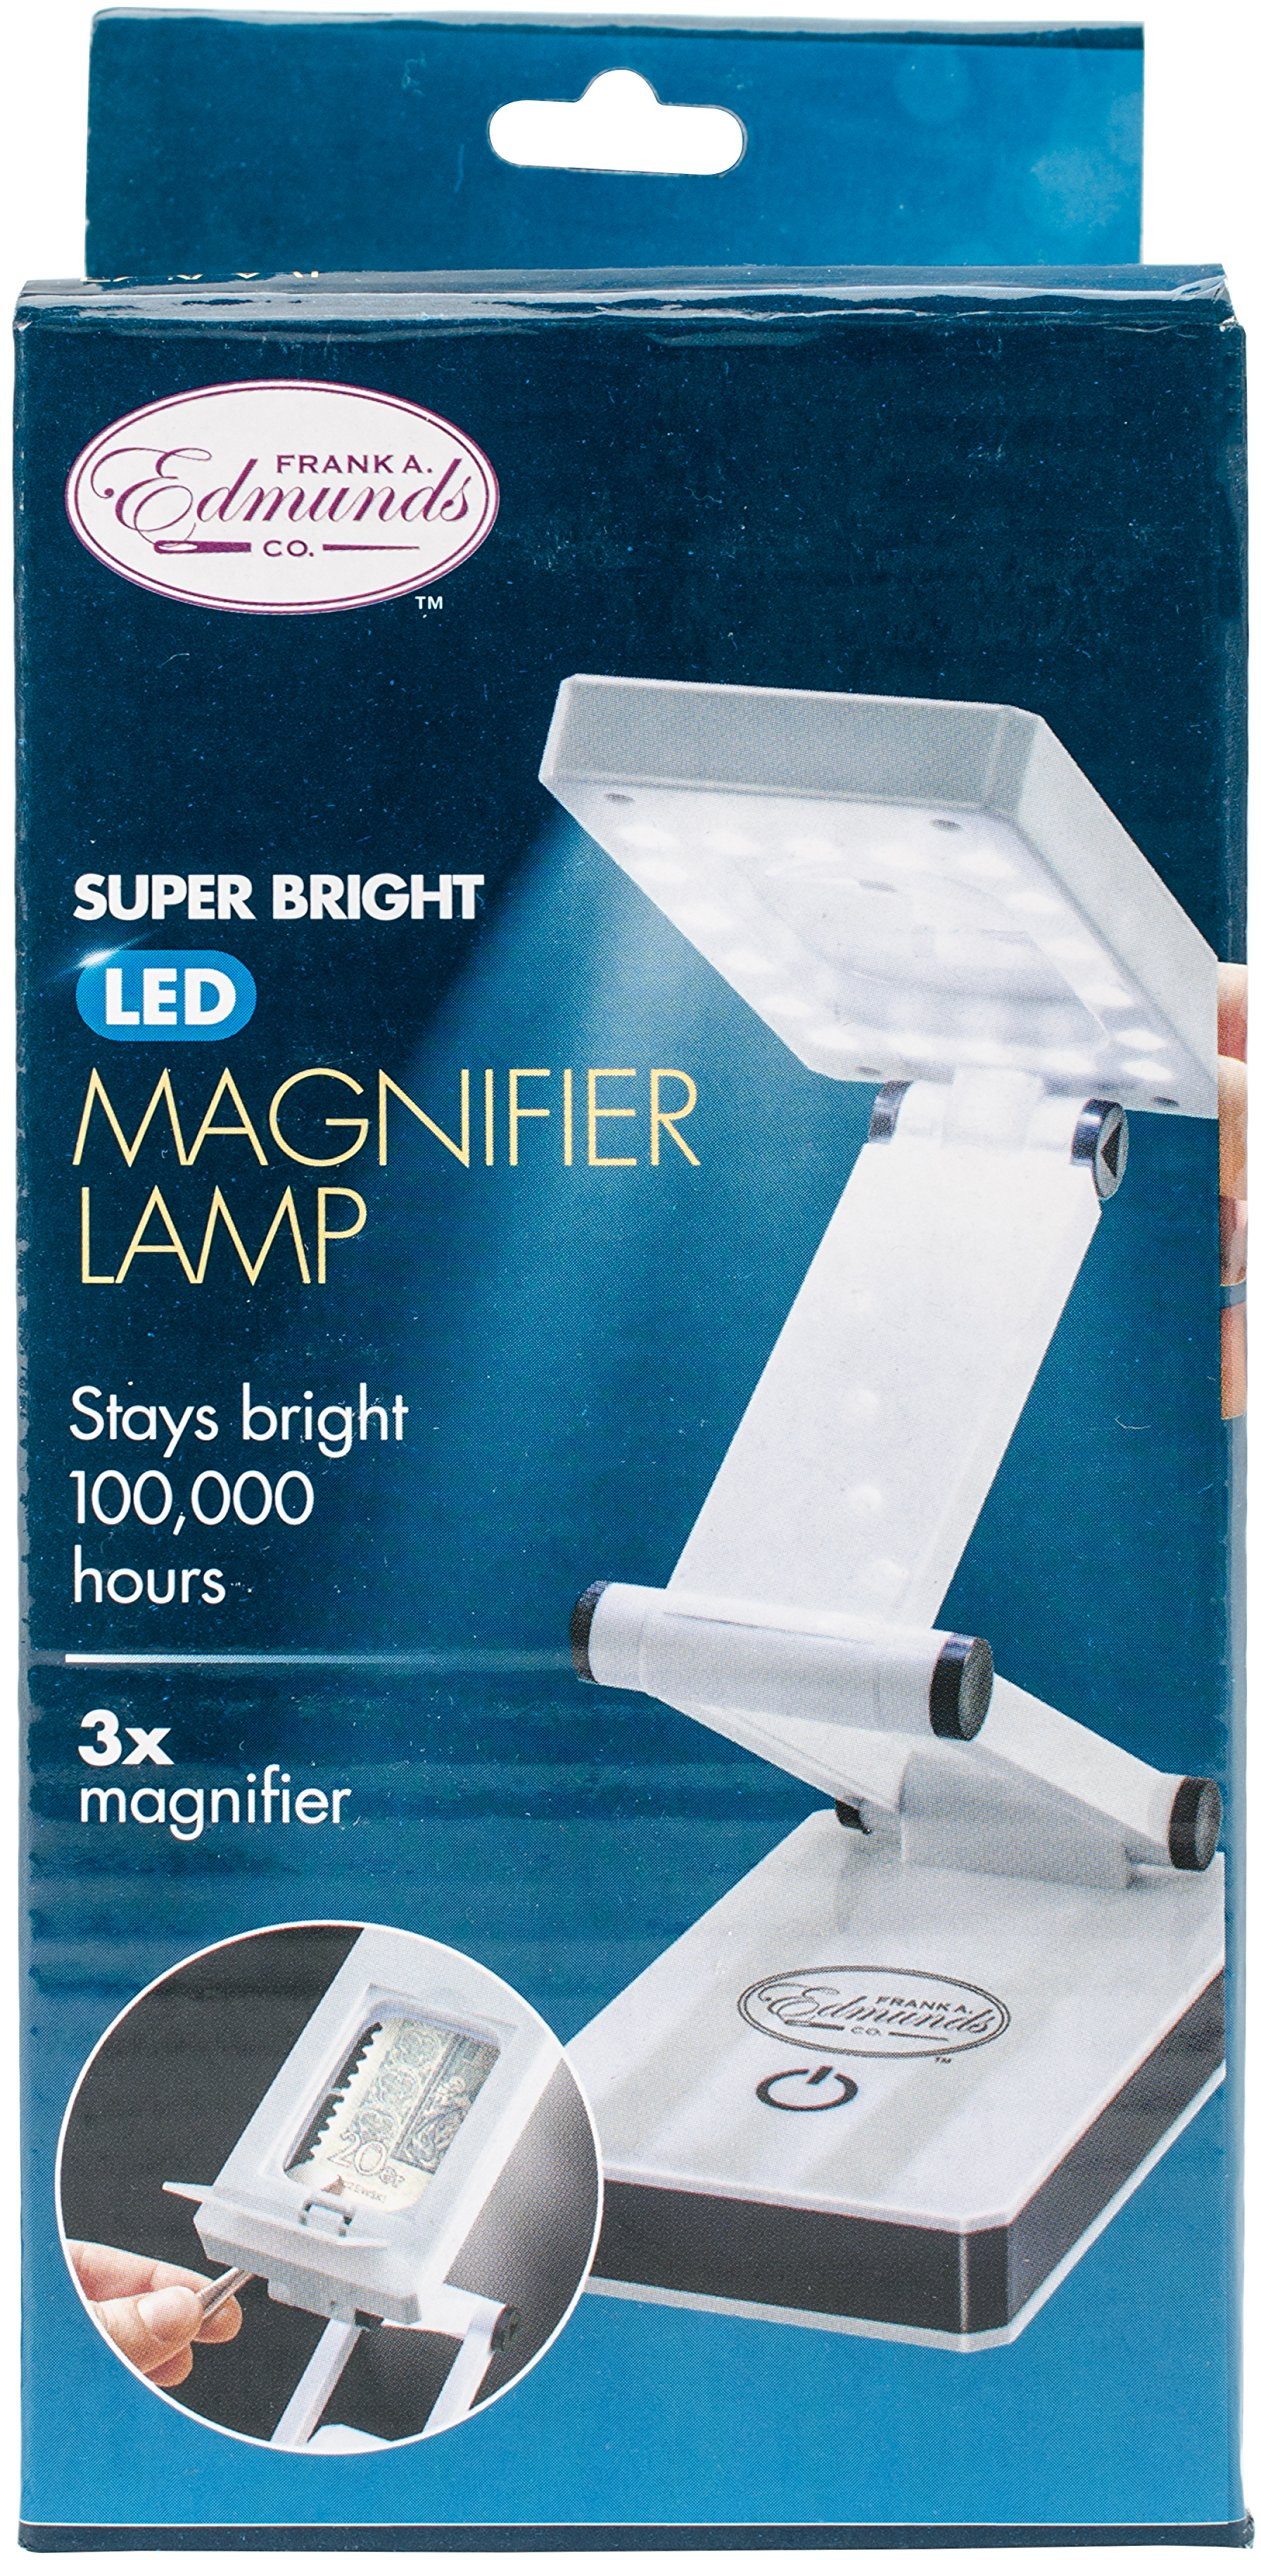 Ideaworks Super Bright LED Magnifier Lamp - Magnify & Illuminate Small Tasks or Projects -Collapsible, Space Saving Design - 18 LED Lights with Multiple Levels of Brightness